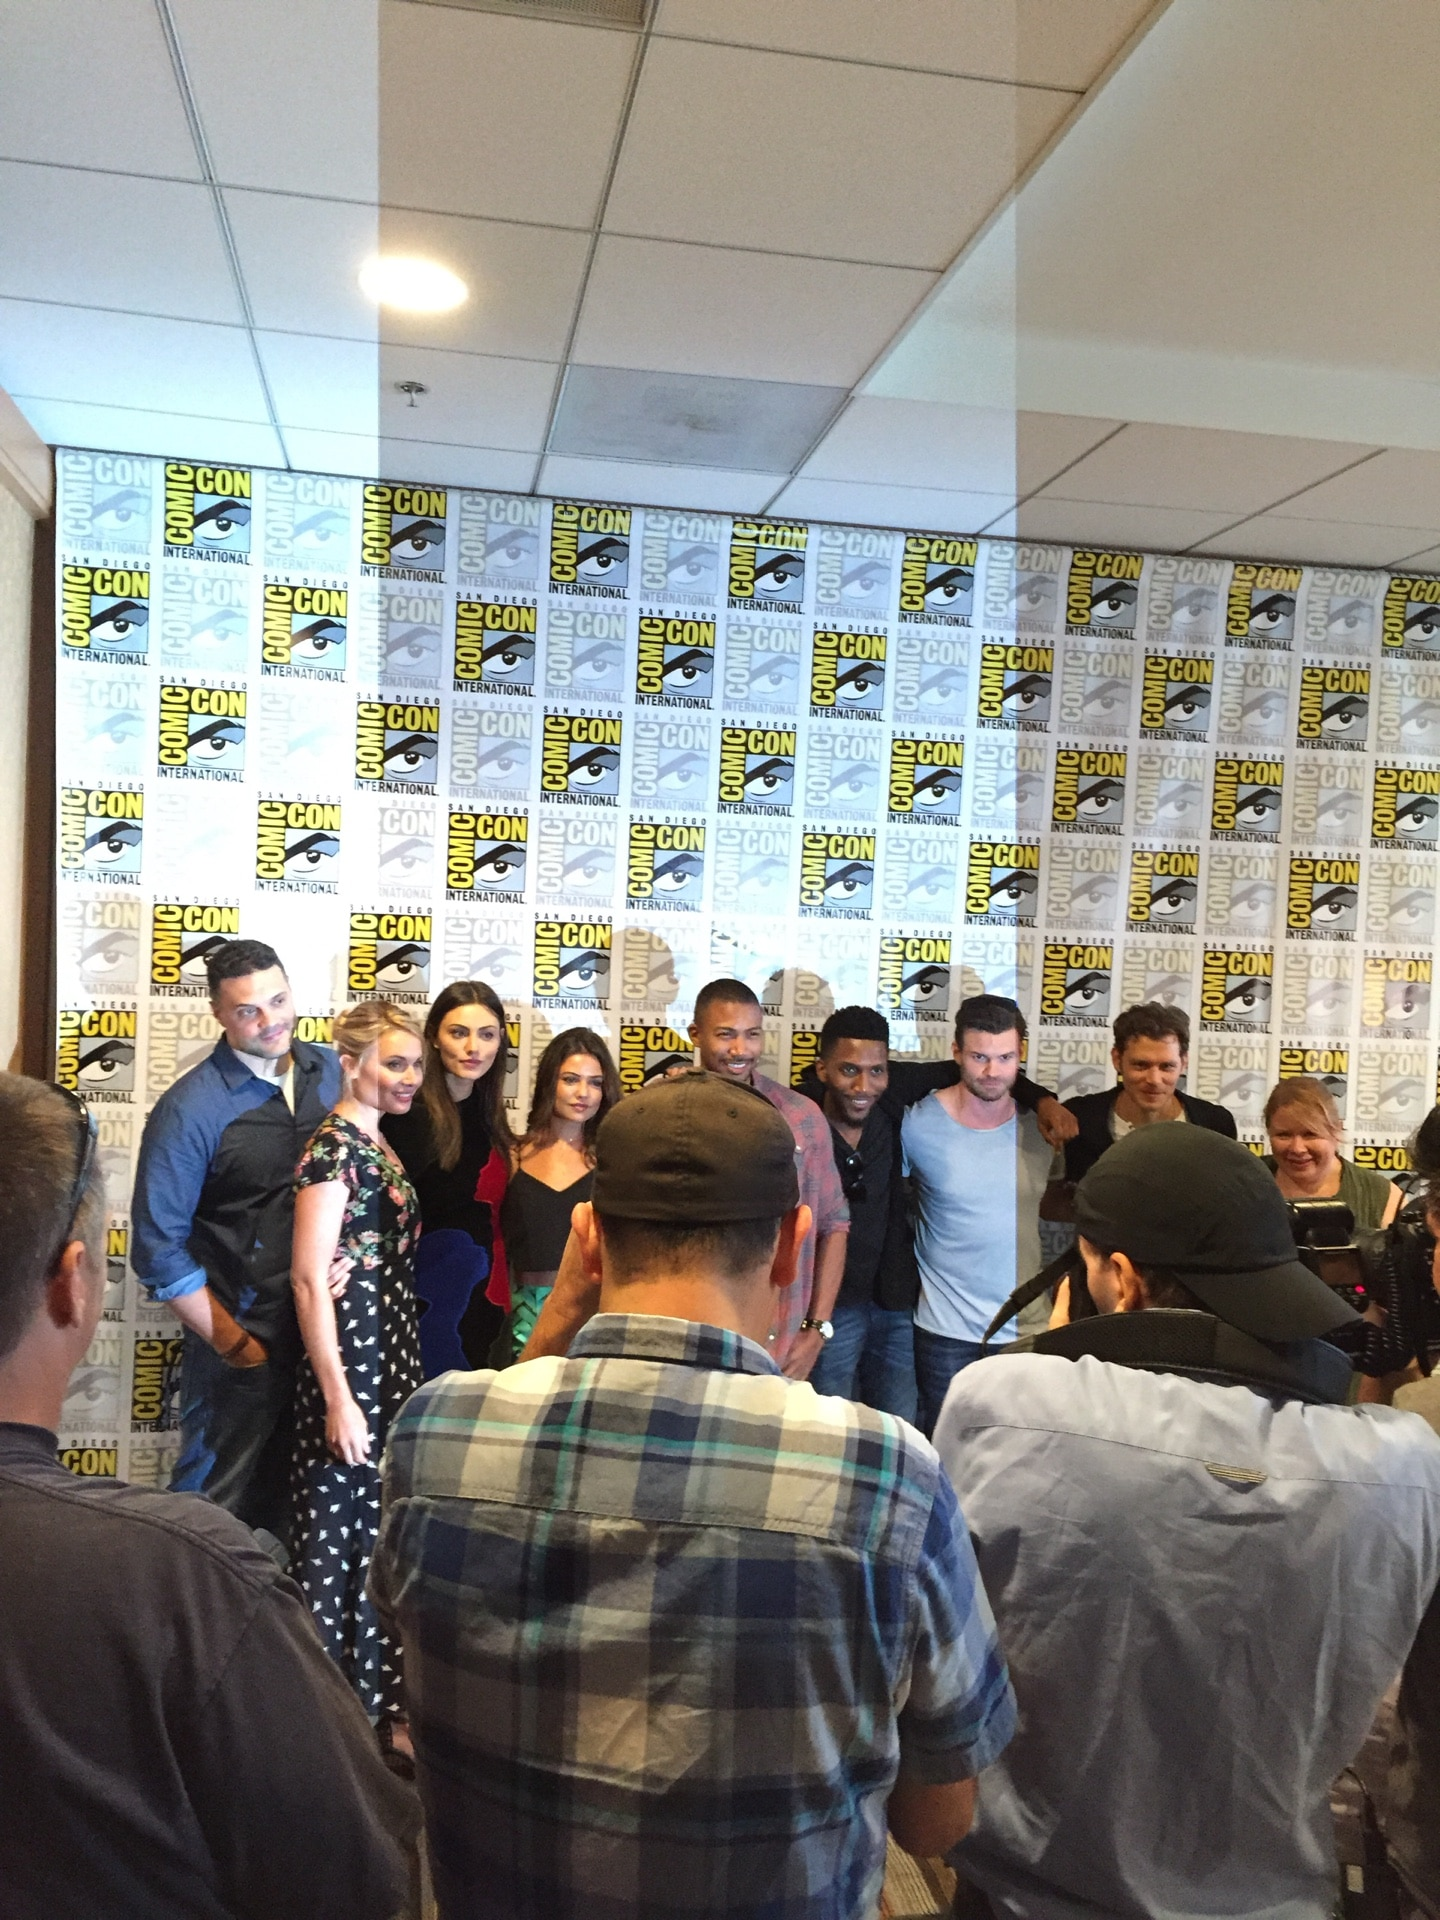 The Originals - 2015 San Diego Comic-Con